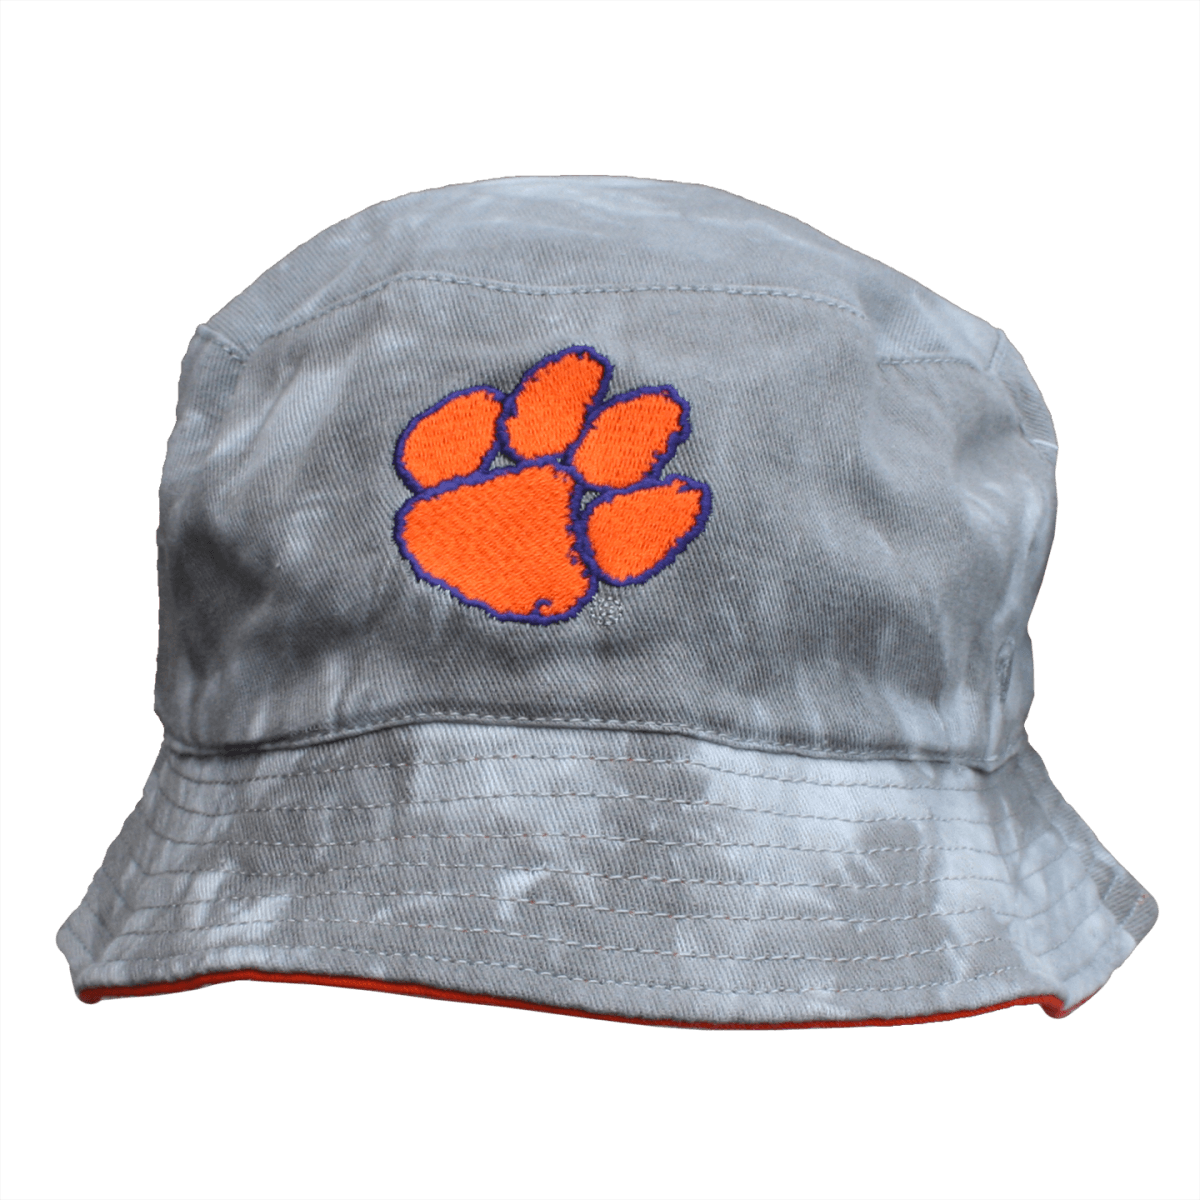 Clemson Tigers Sandy Tie Dye Bucket Hat Mr Knickerbocker